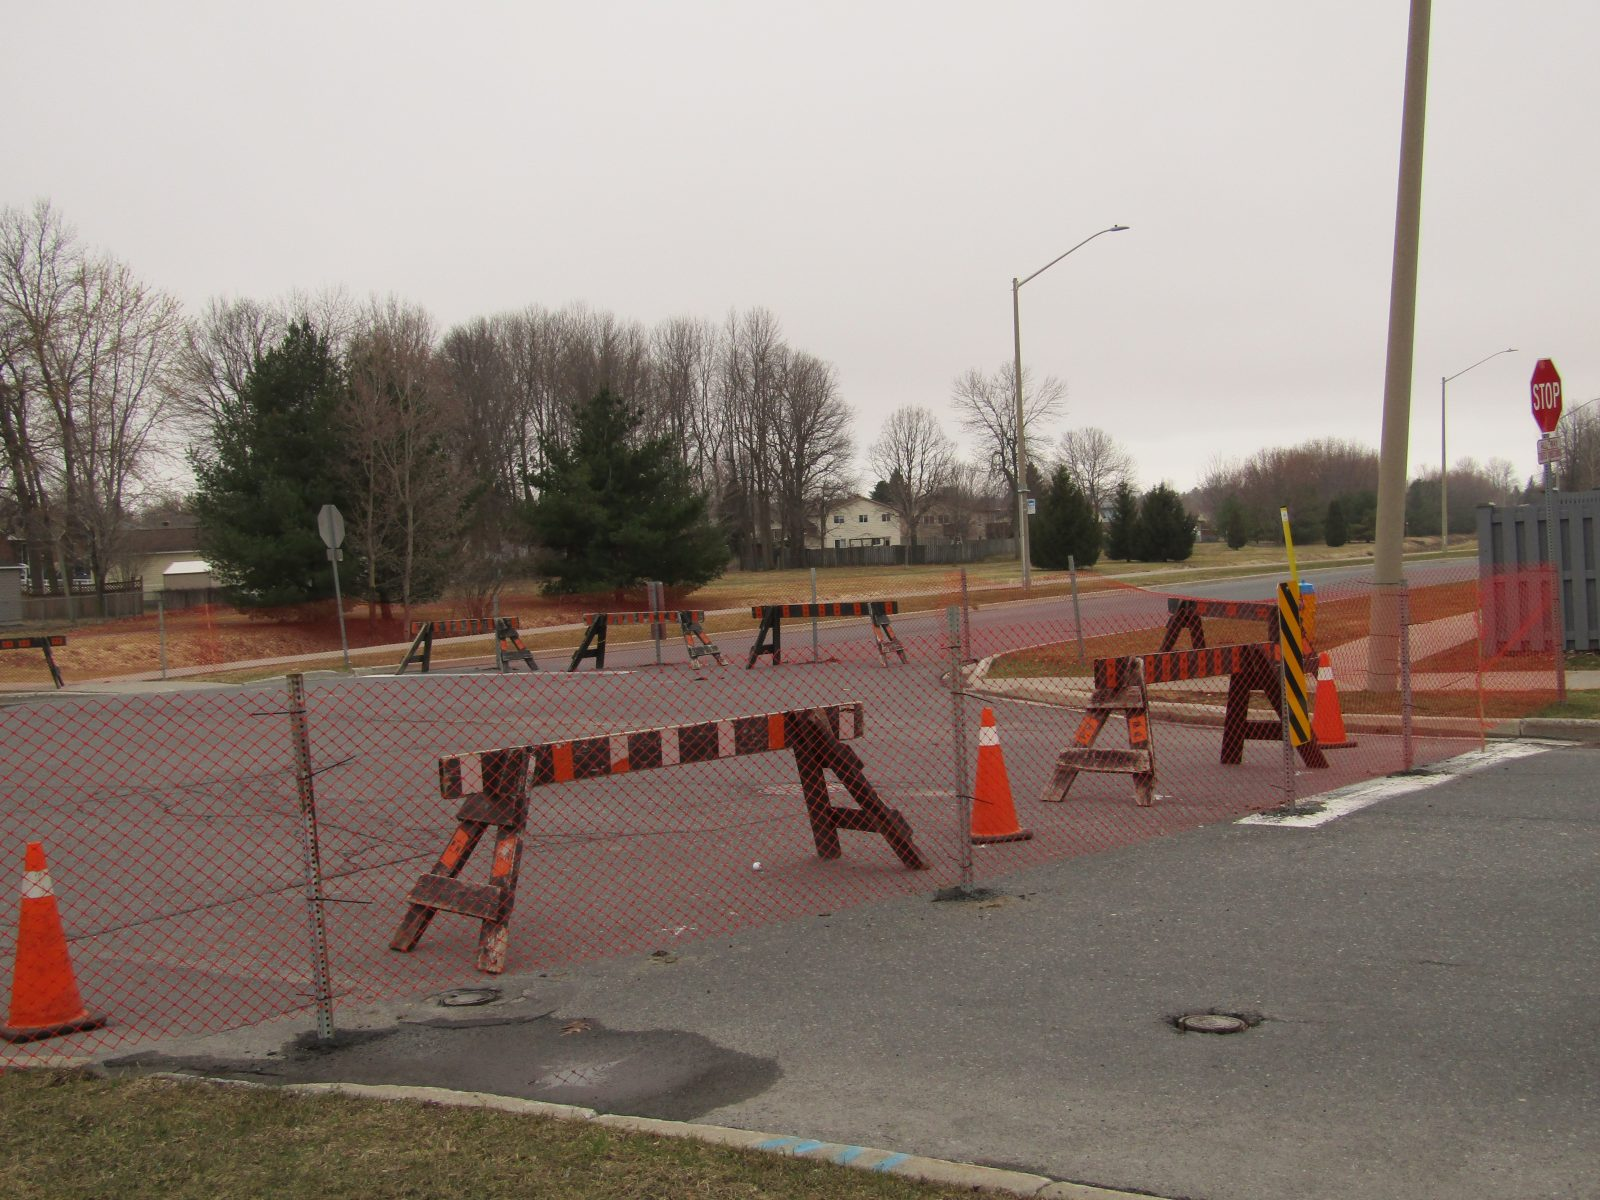 City releases update on closure at Cumberland and Emma